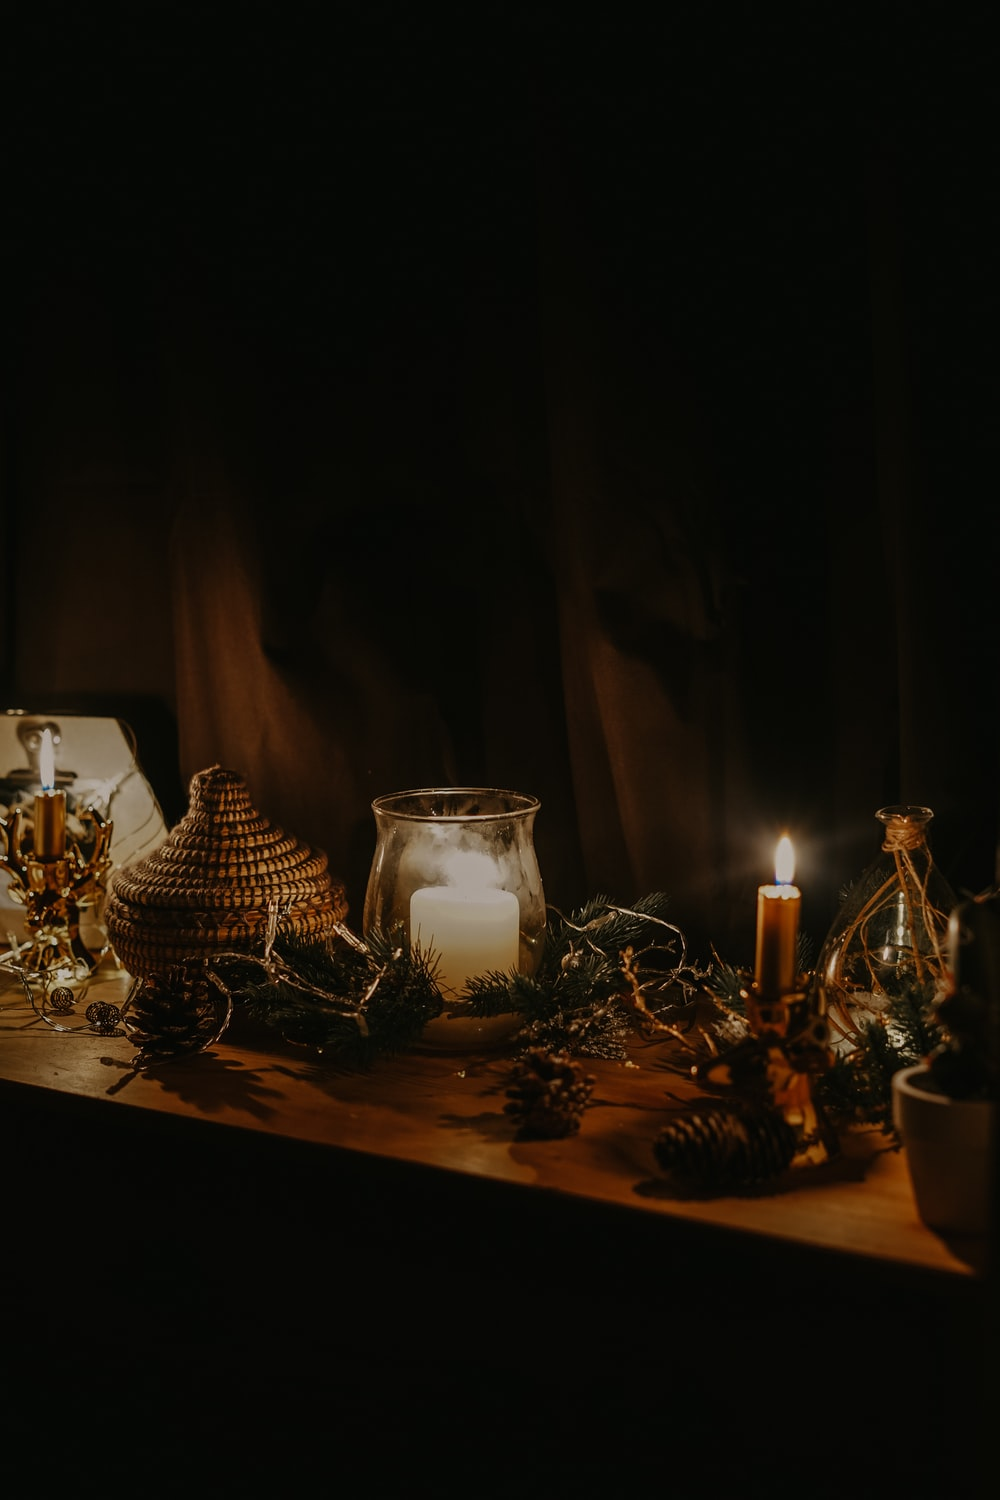 lighted candle near jars and pine cone on table